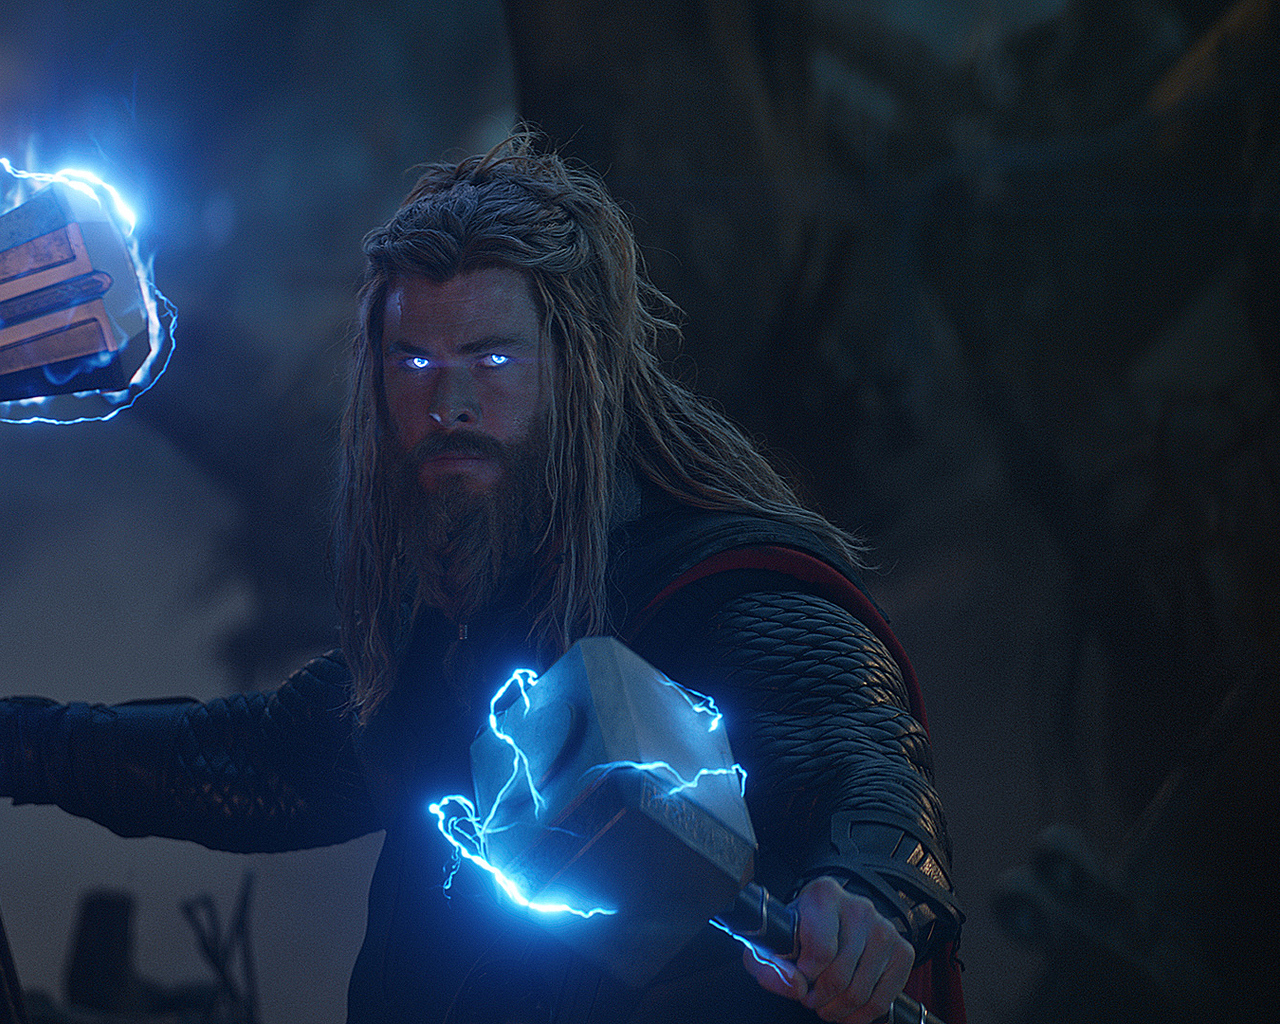 thor-avengers-endgame-final-battle-scene-jp.jpg